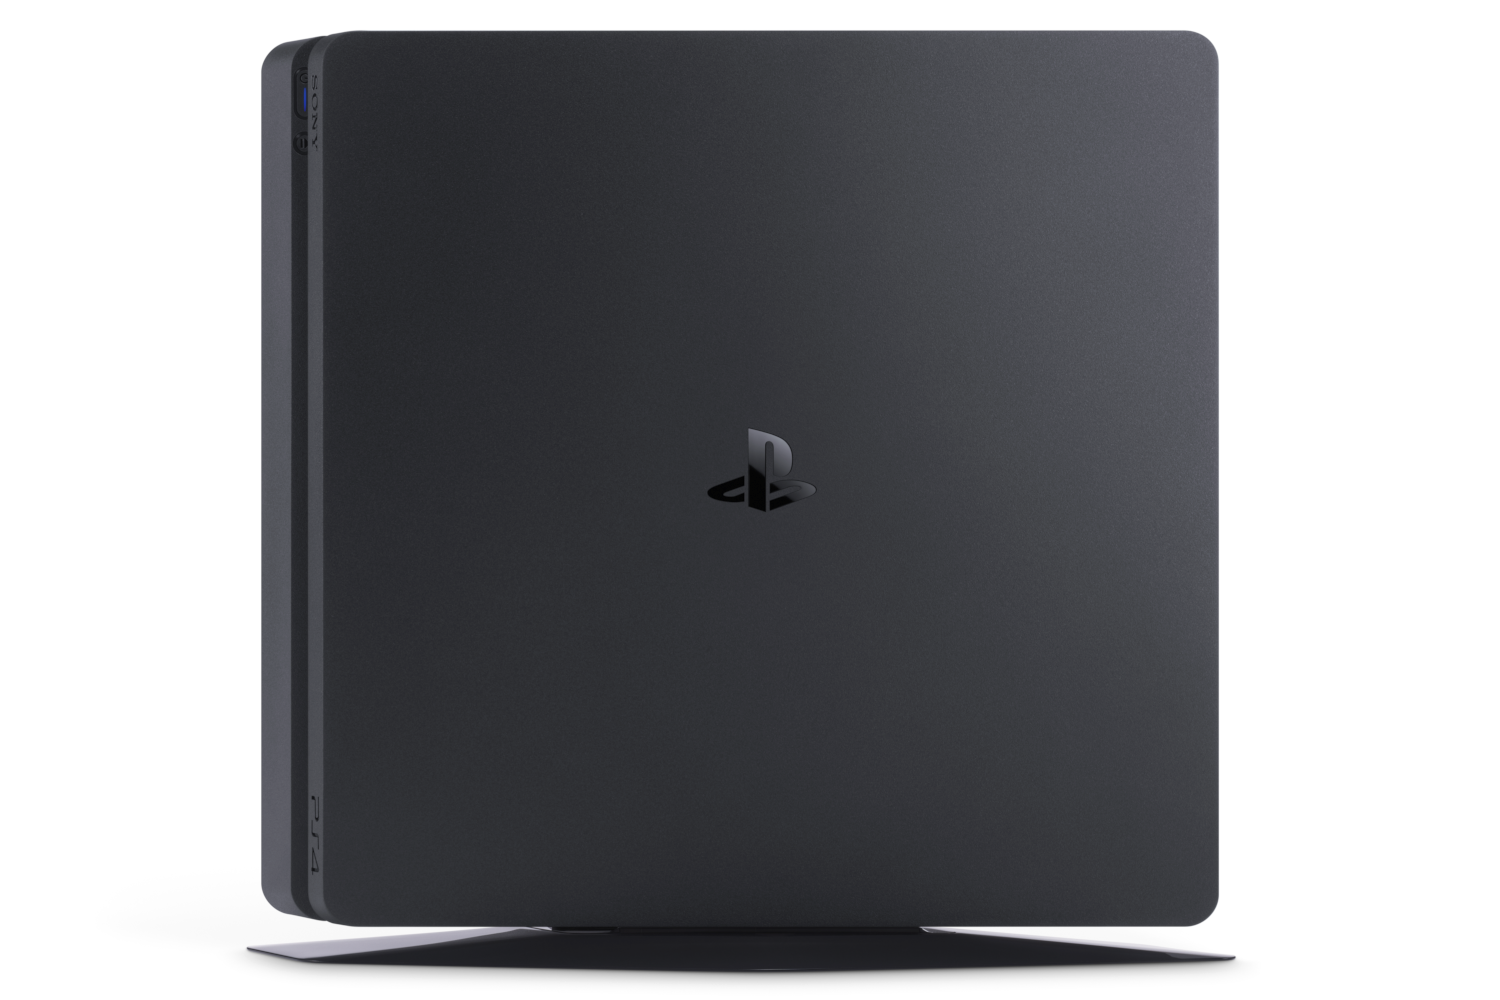 PS4 Slim: CUH-20xx